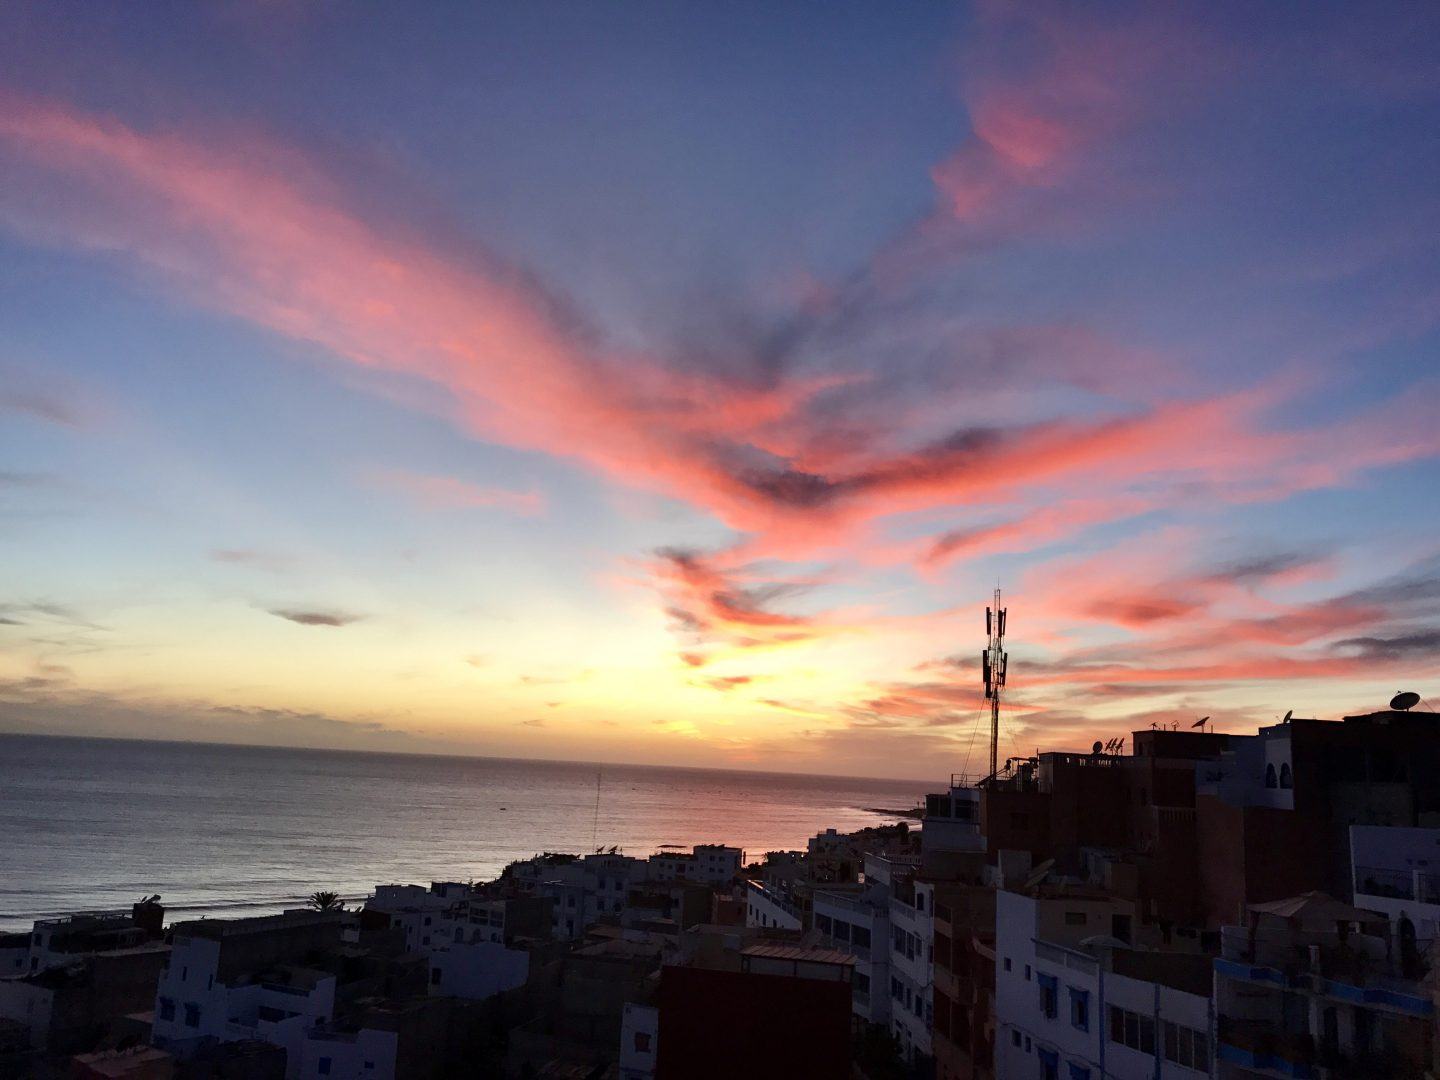 Beautiful pink-orange Sunset over the ocean in Taghazout